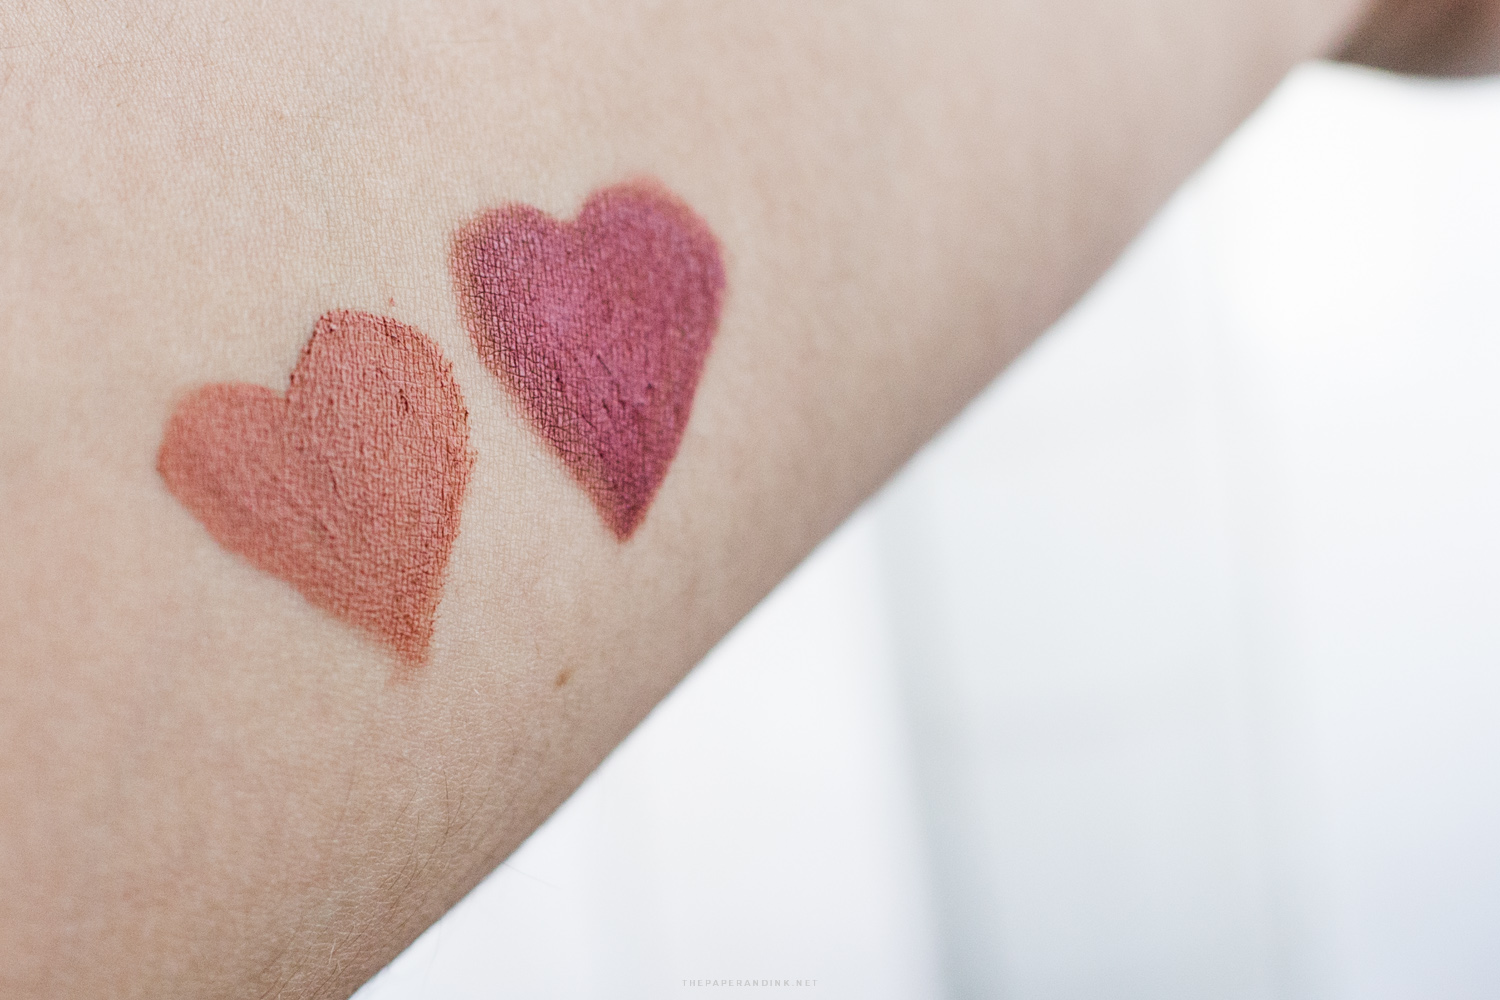 NYX Lingerie Lid and Lip Swatches - Push Up and Evening Spell